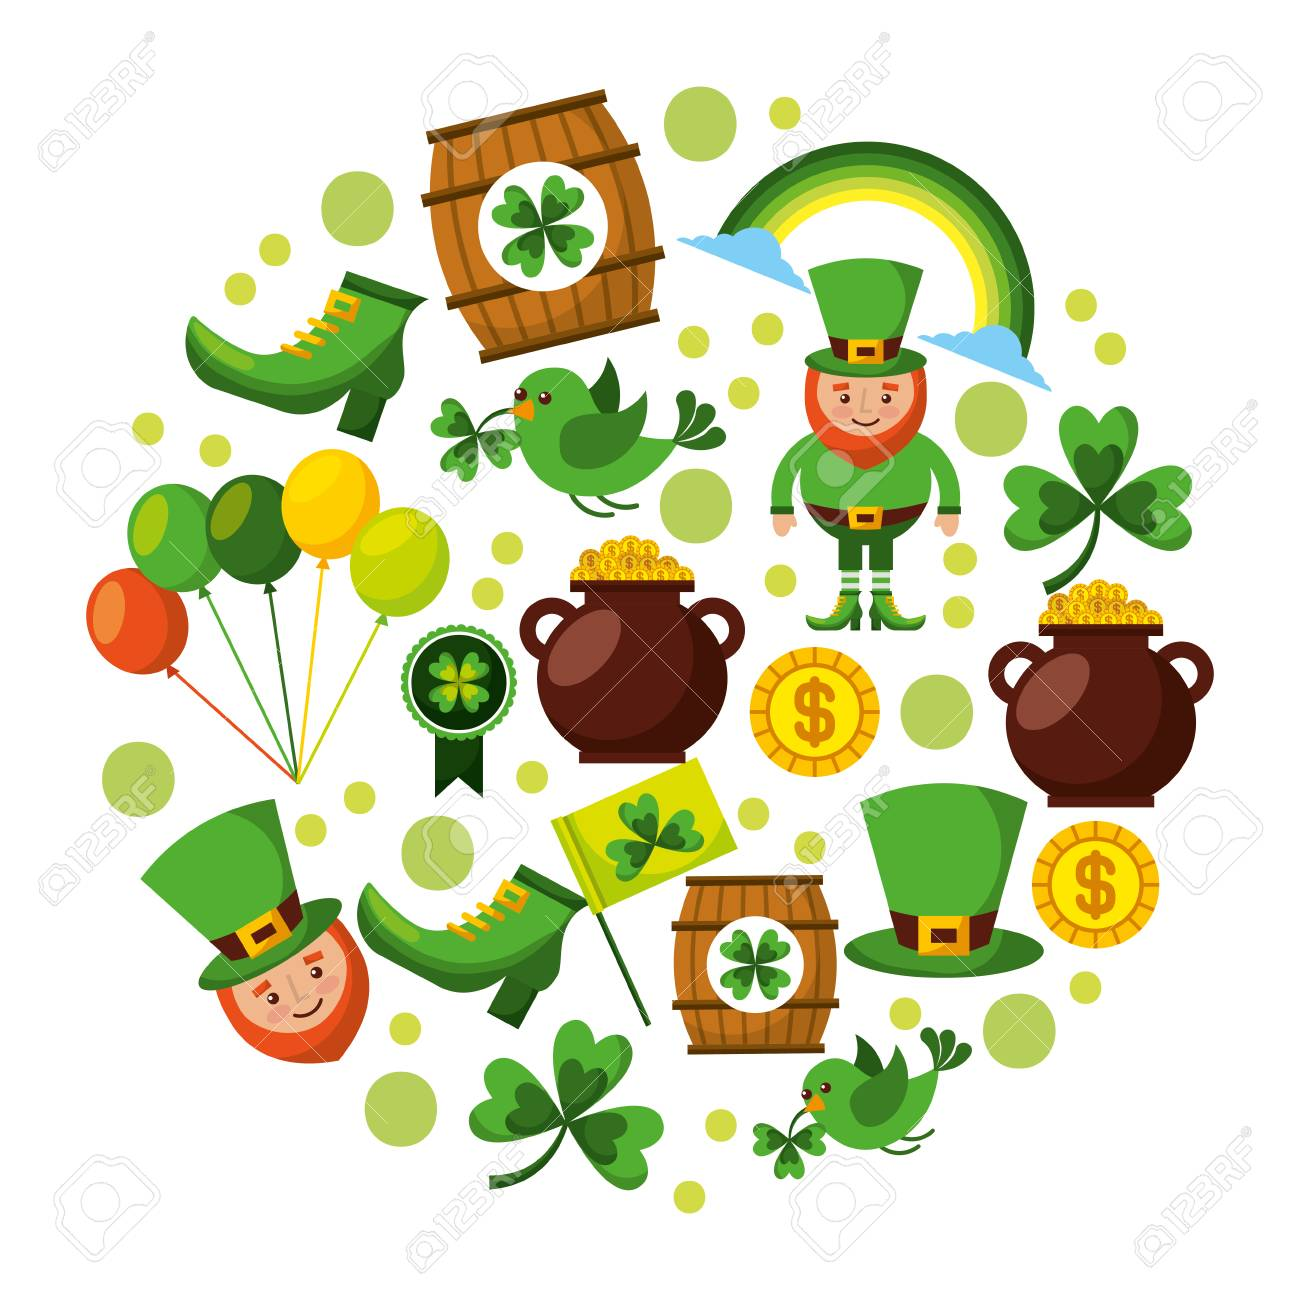 St Patricks Day Celebration Party Elements Icons Vector Illustration Royalty Free Cliparts Vectors And Stock Illustration Image 94473752